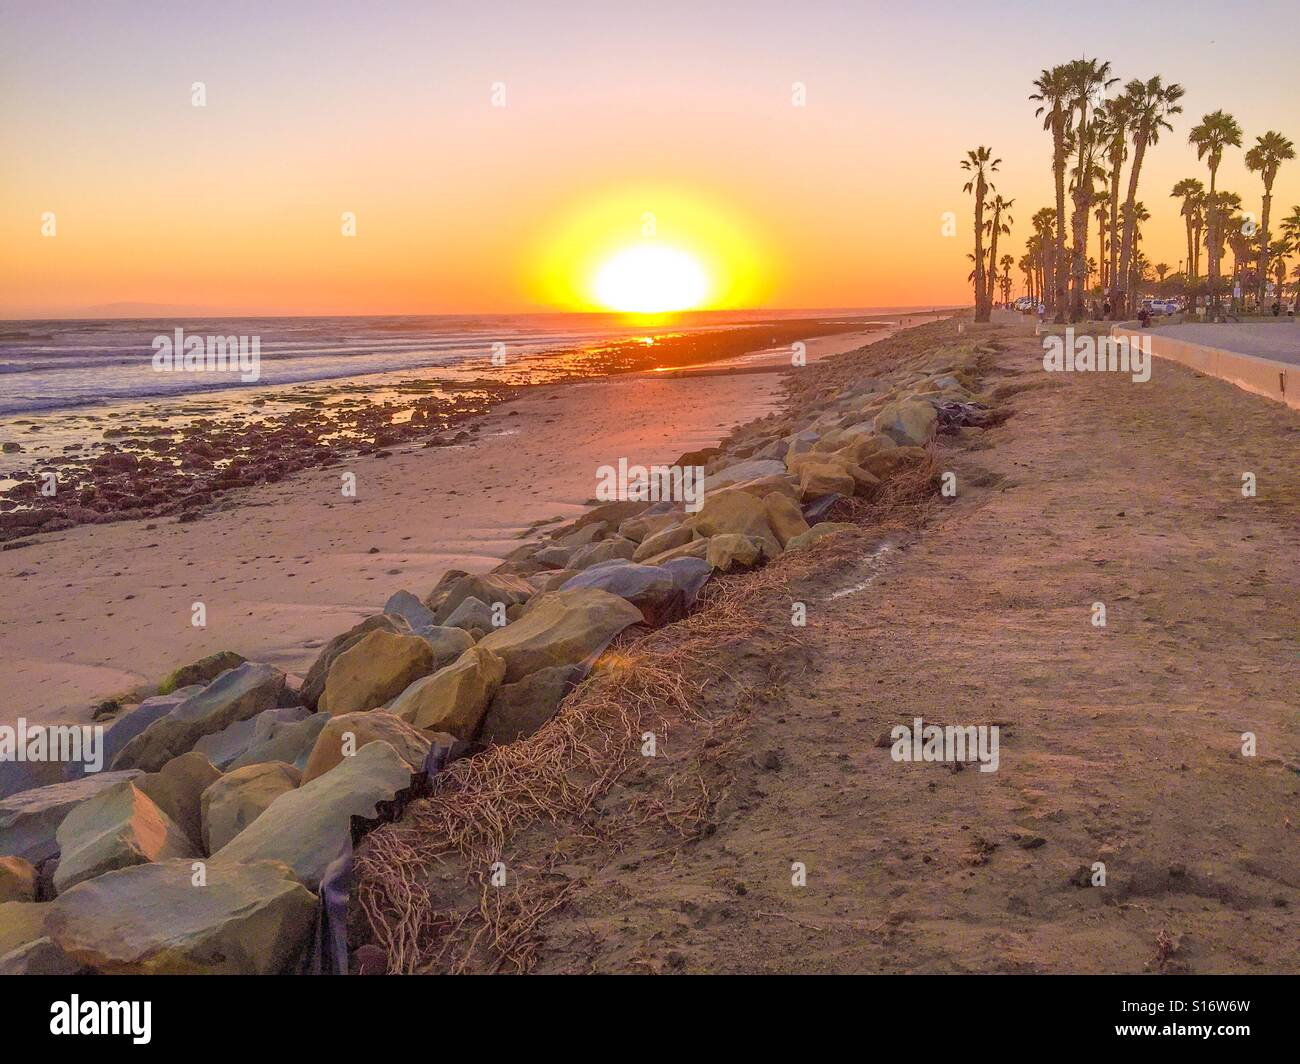 Sunset at the beach in Ventura, California - Stock Image